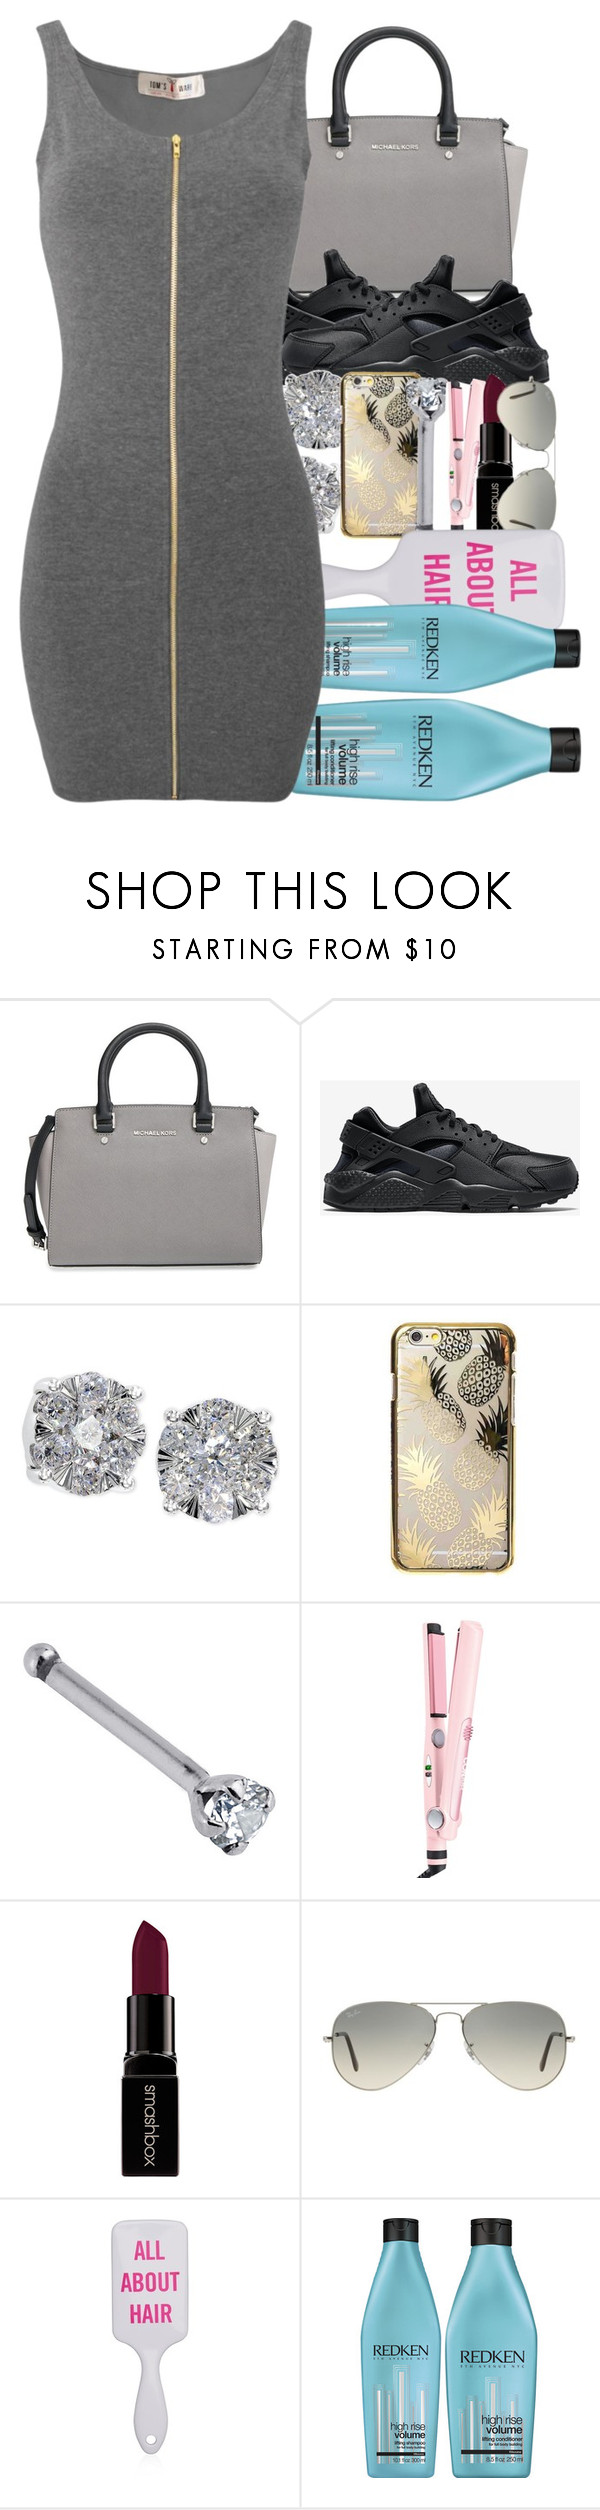 """""""imma eat her ass like a cheesecake now we back to my place bust on her face"""" by wvntertime ❤ liked on Polyvore featuring MICHAEL Michael Kors, NIKE, Effy Jewelry, Skinnydip, Conair, Smashbox, Ray-Ban and Redken"""